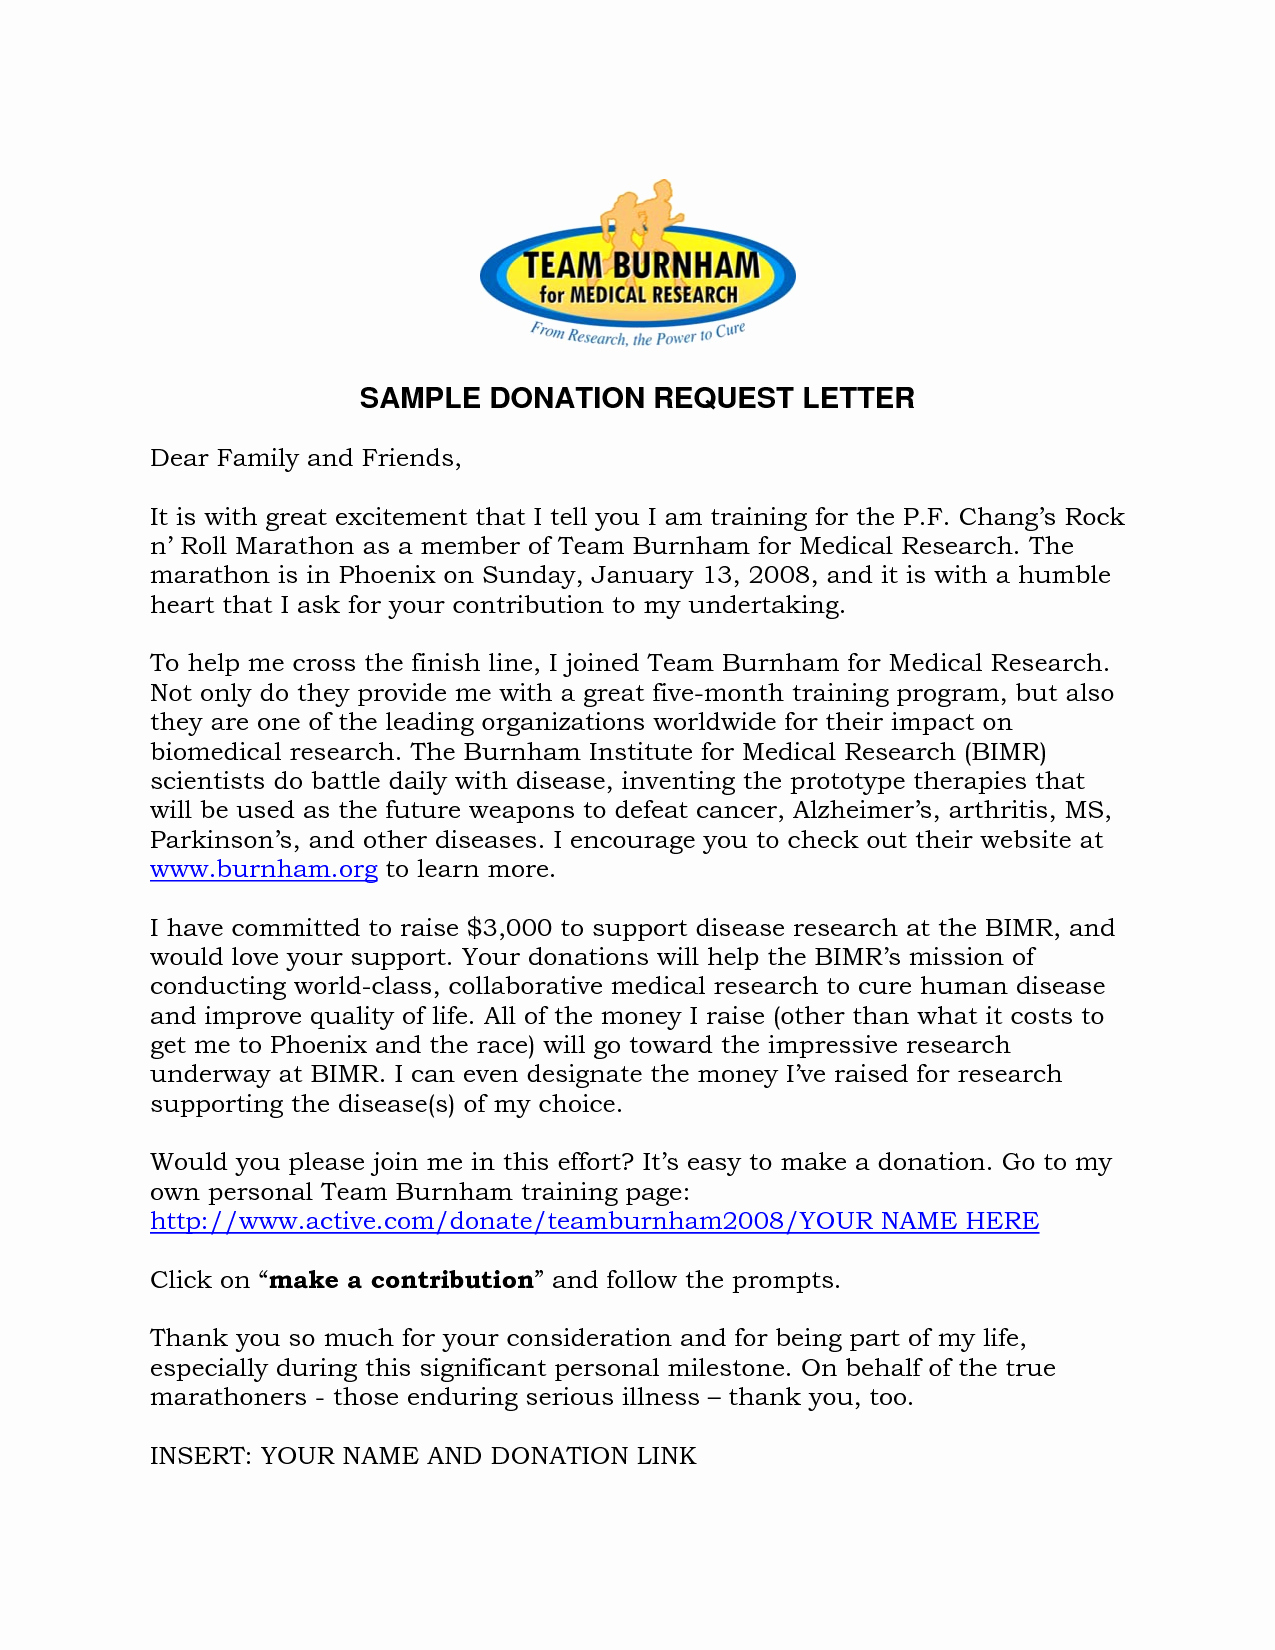 30 Sample Letters asking for Donations | Tate Publishing News